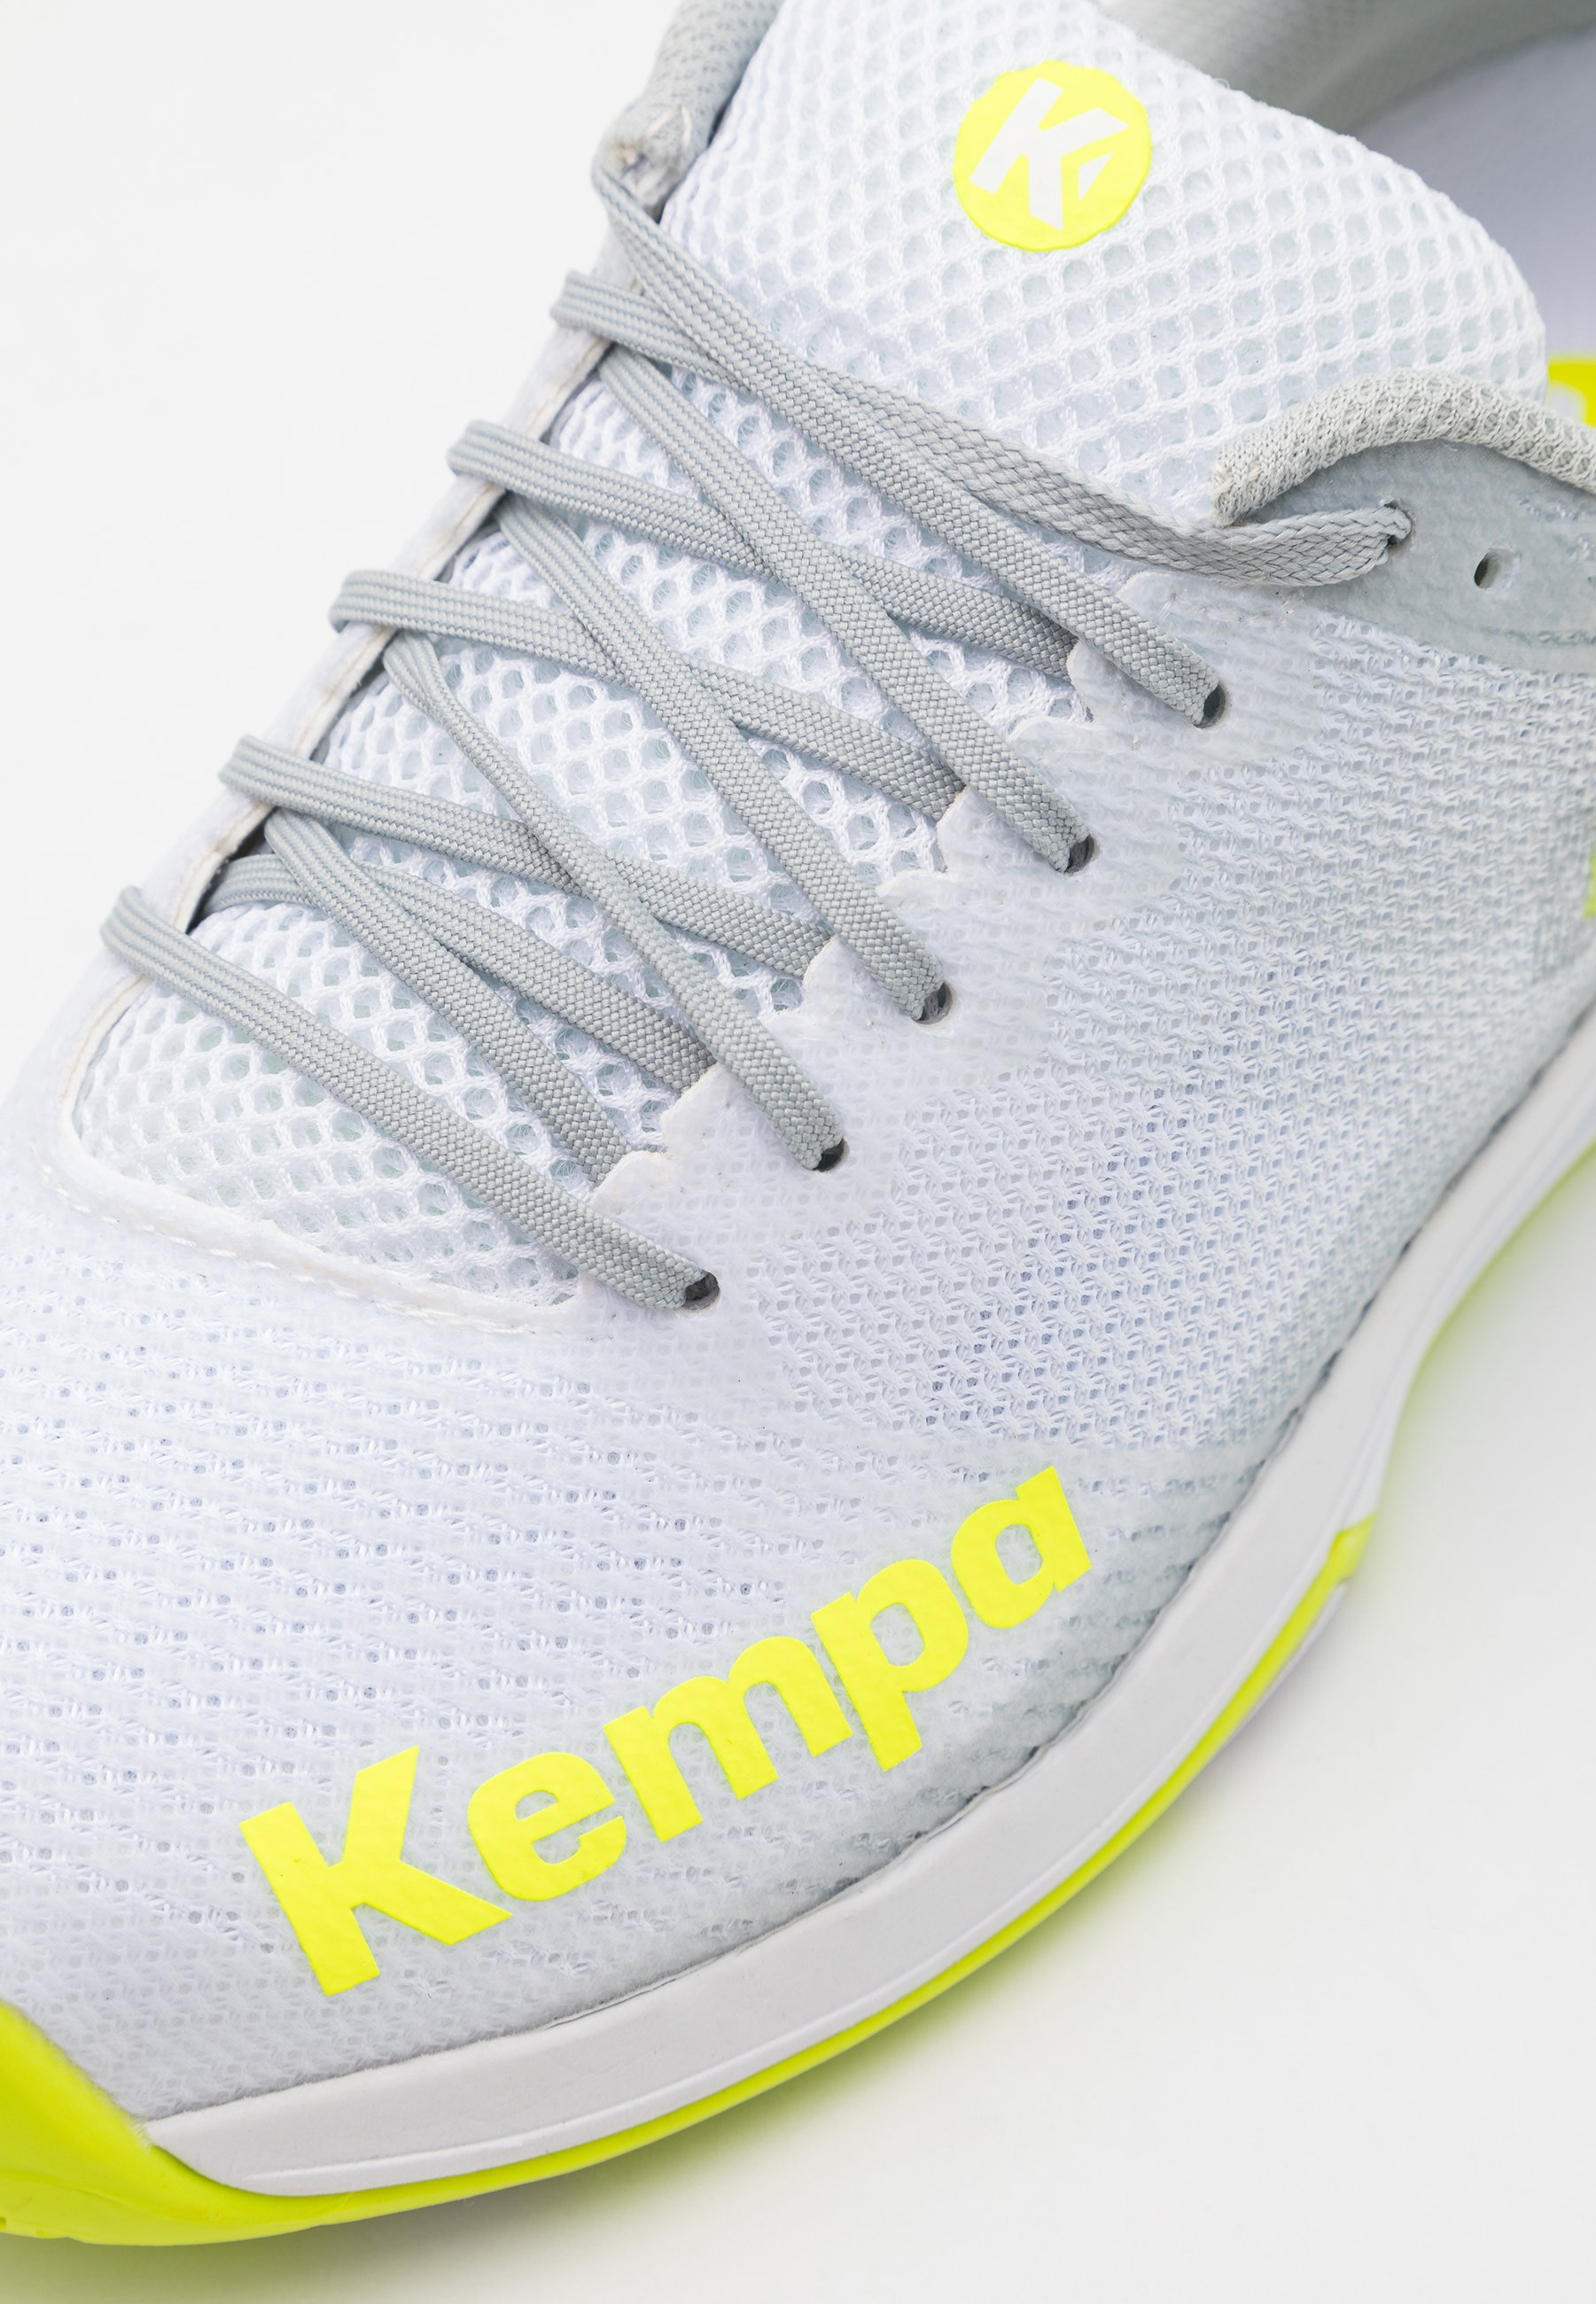 Kempa WING 2.0 Håndballsko whiteflou yellow Zalando.no